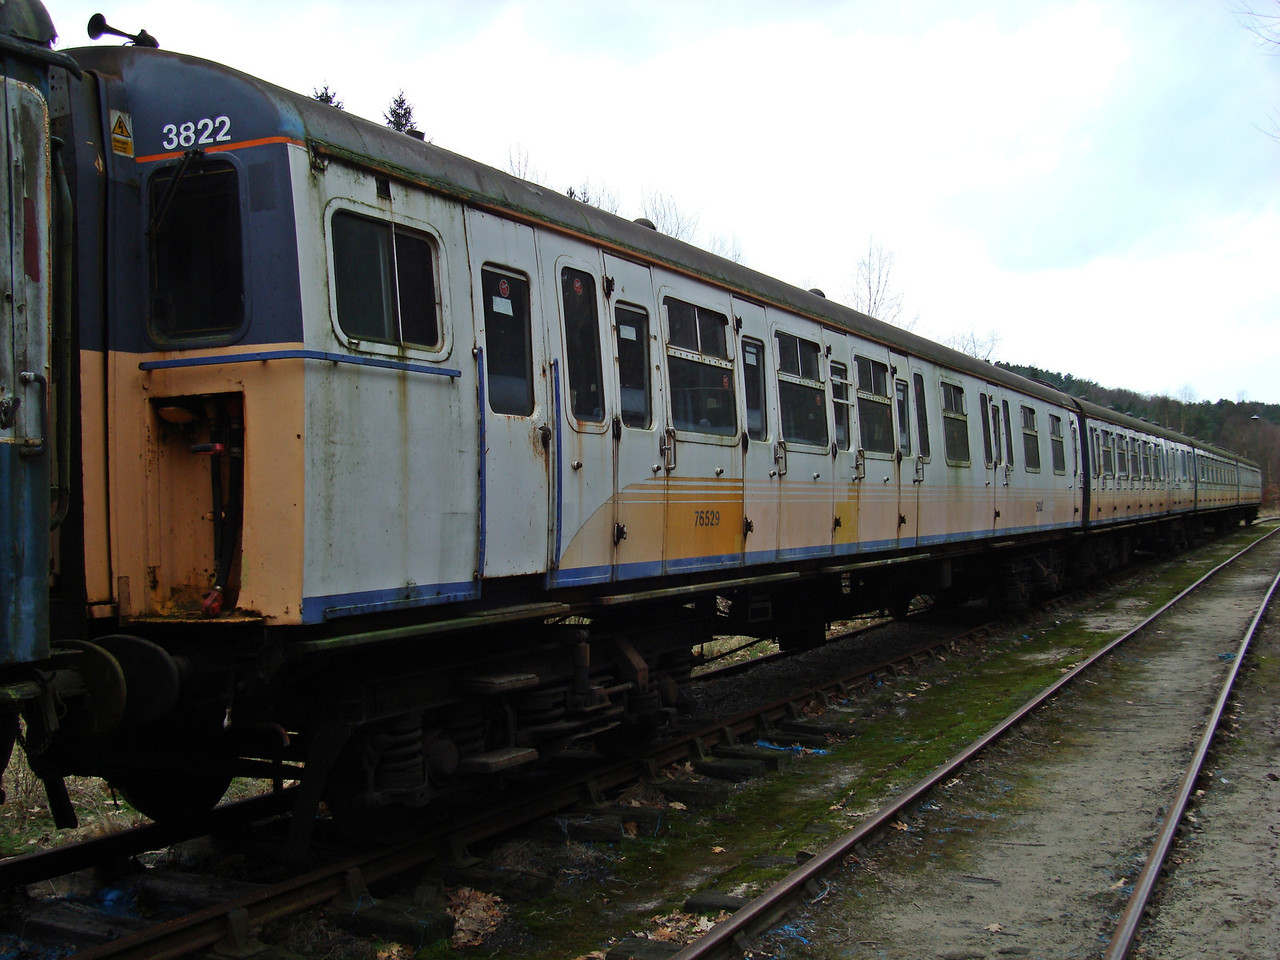 BR 4VEP (Set 3822) 76529,62351,76712, 71032  03,02,2008. All Scrapped